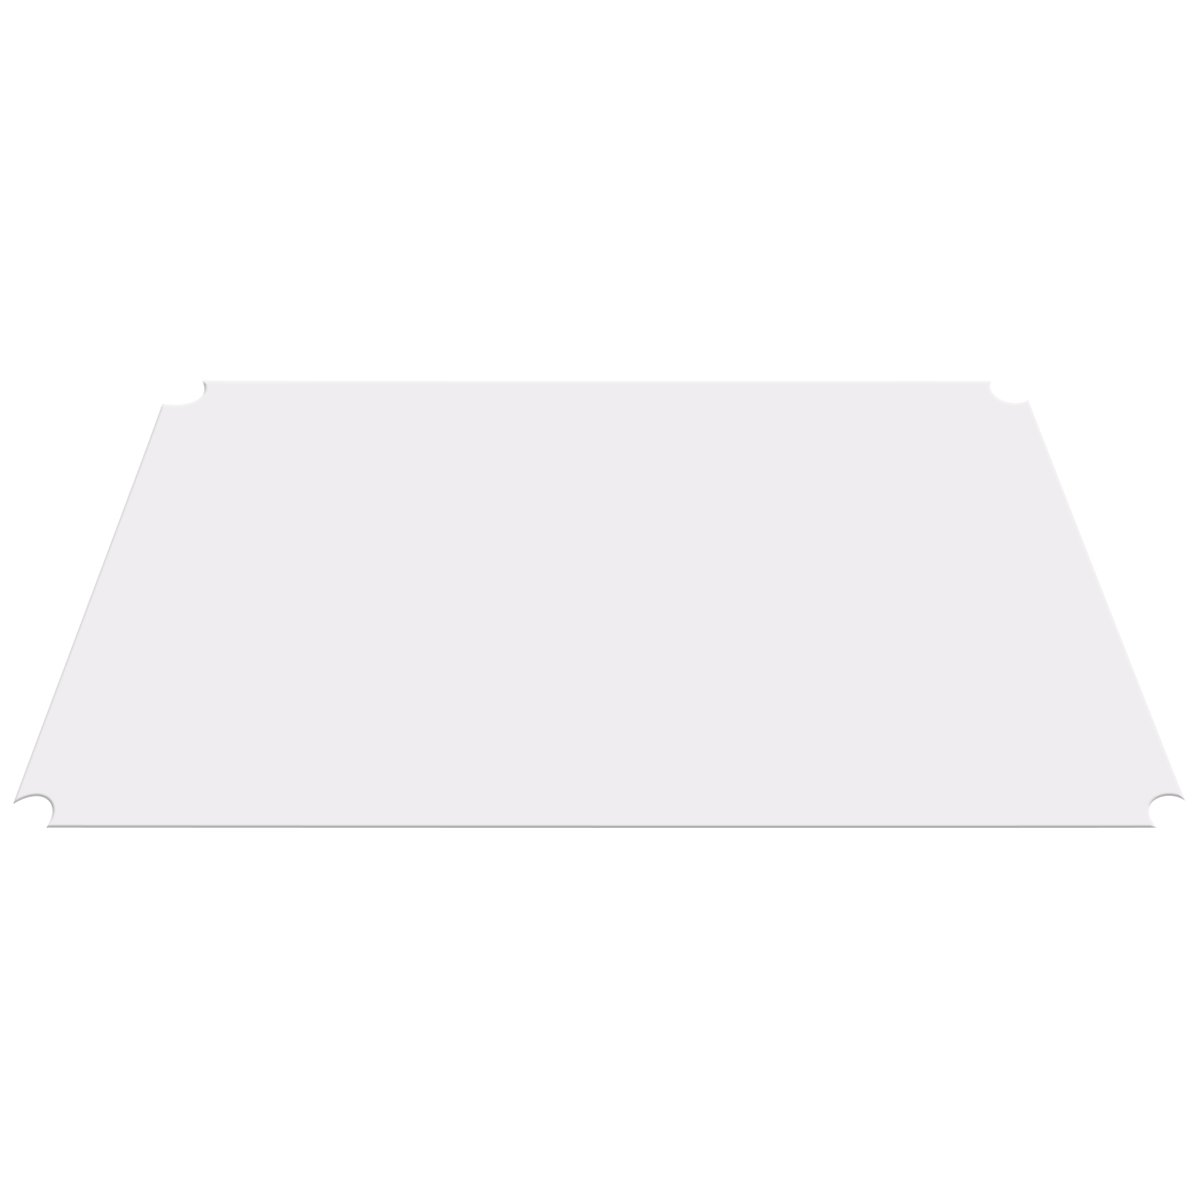 AKRO-MILS  AW2436LINER - Clear Shelf Liner for 24-inch X 36-inch Chrome Wire Shelf - Pack of 4